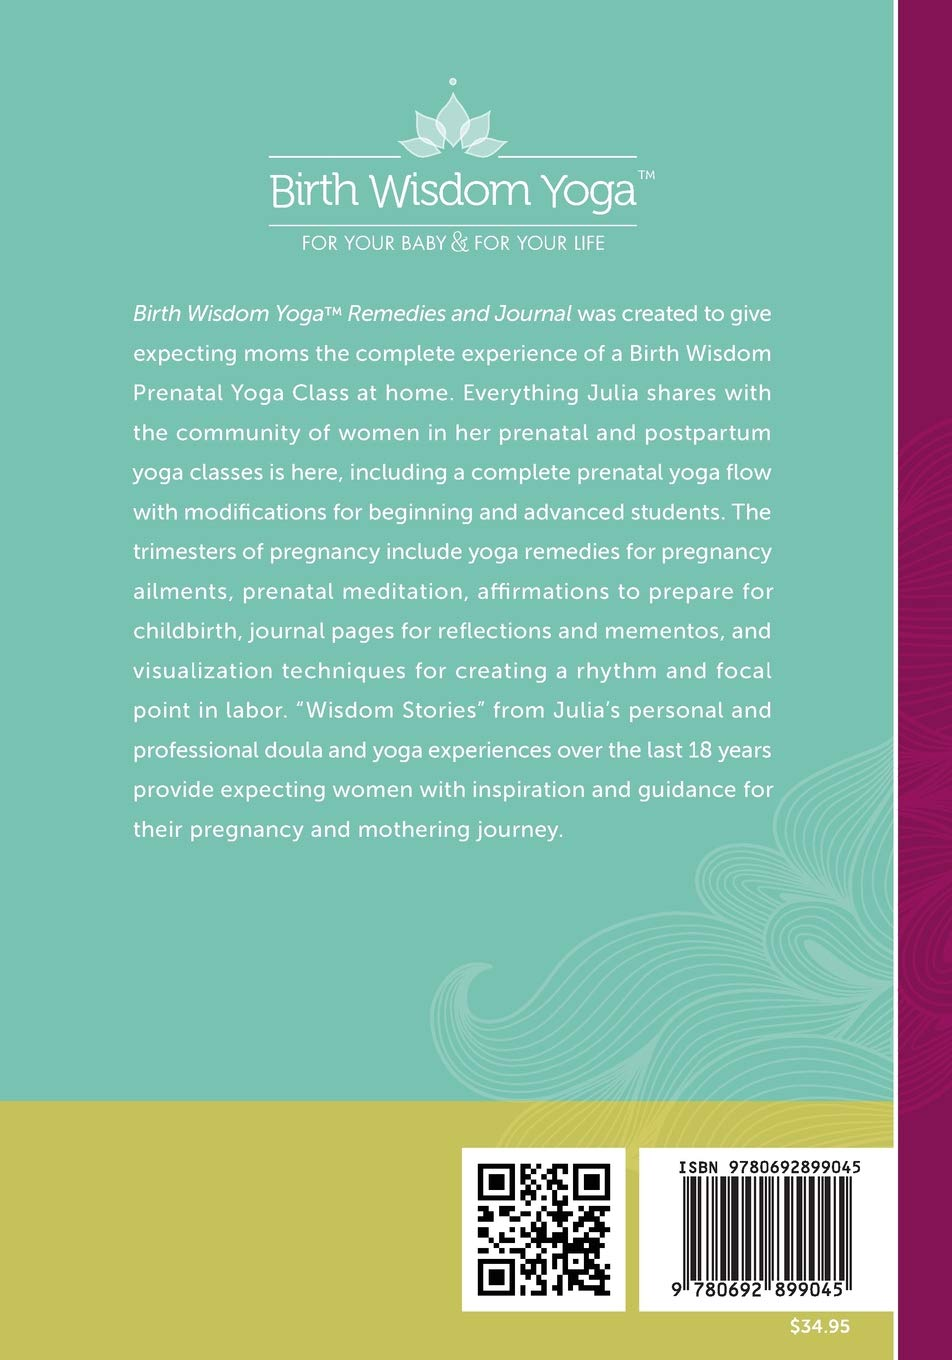 Birth Wisdom Yoga Remedies & Journal: A Complete Prenatal ...